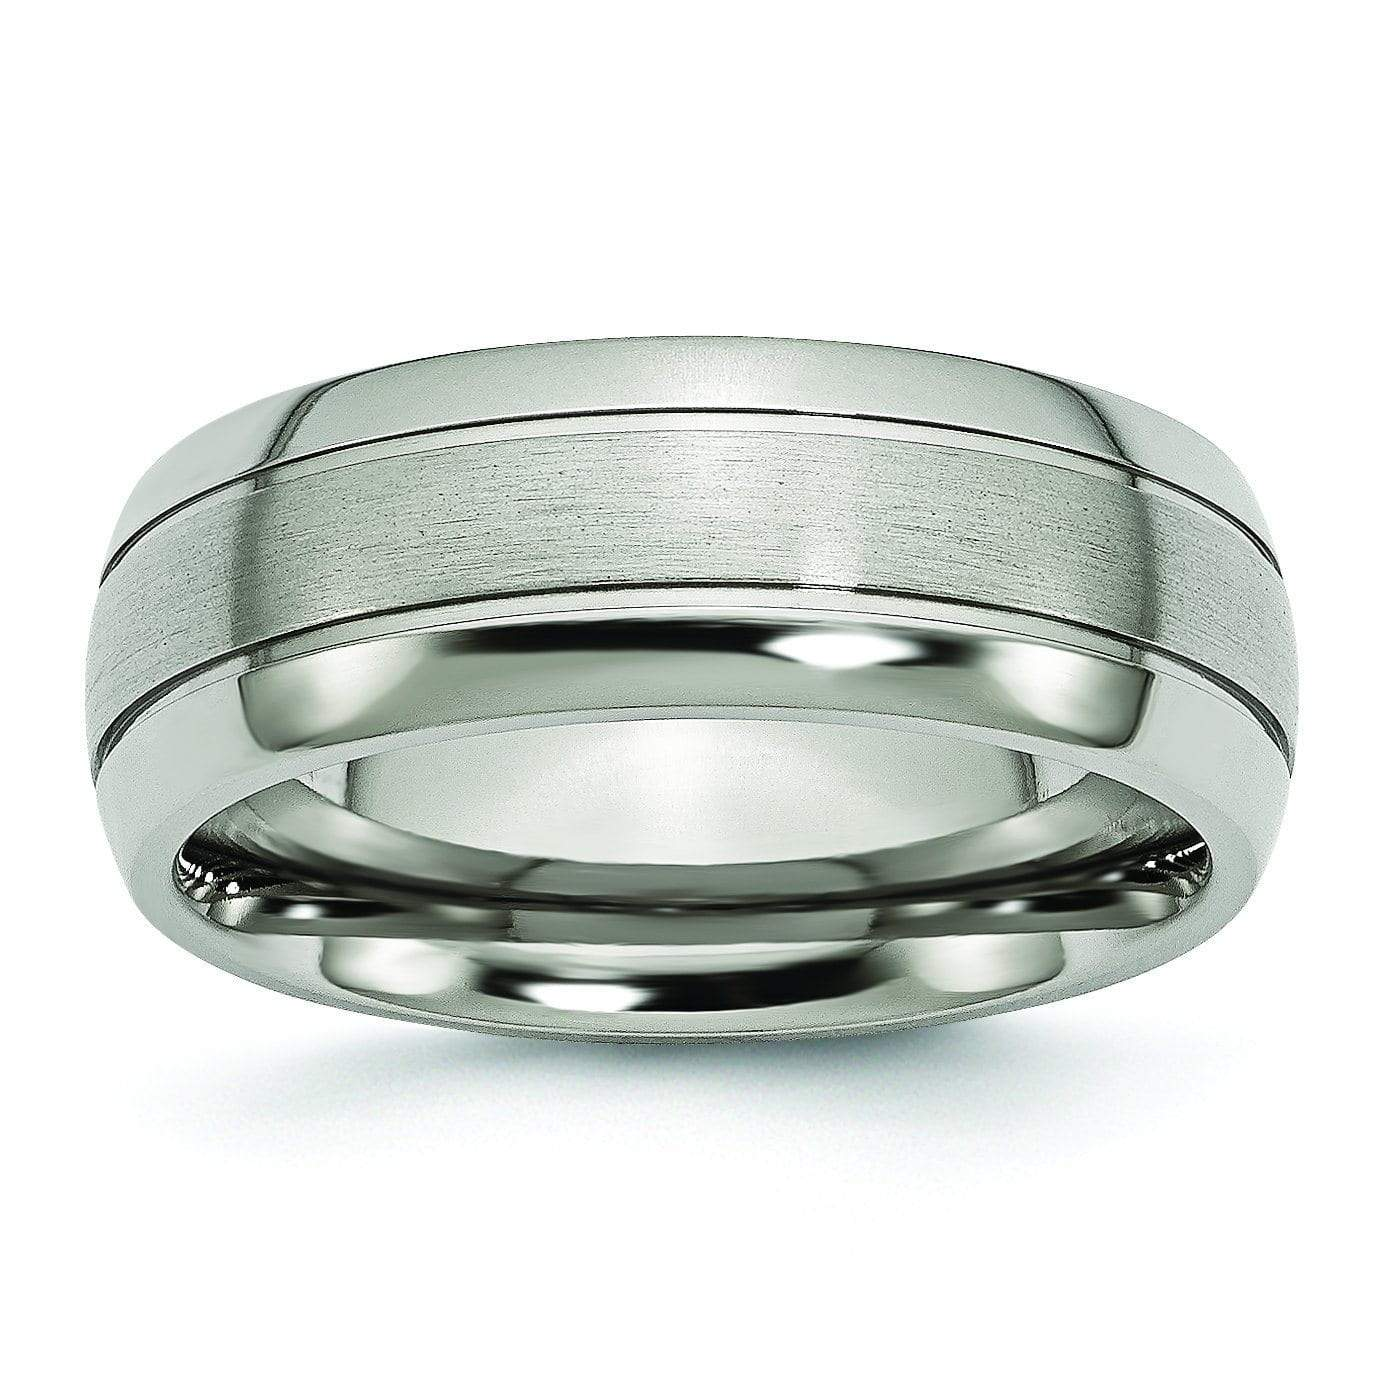 Grooved Aircraft Grade Titanium Band 8mm Titanium Wedding Rings deBebians